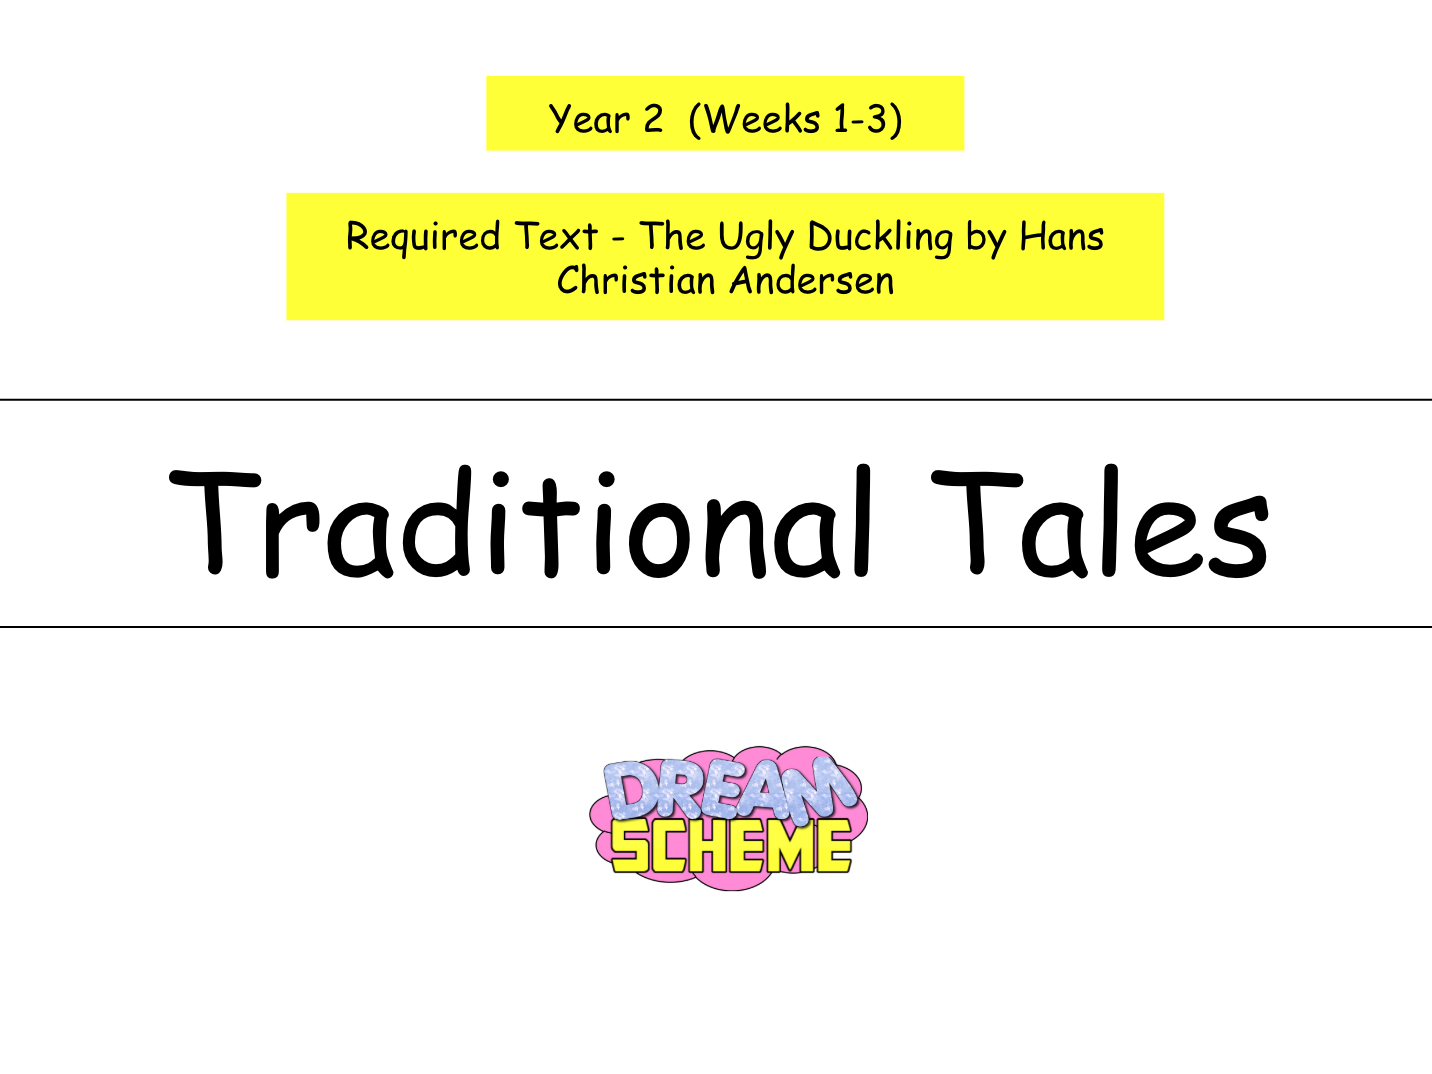 Year 2: Traditional Tales - The Ugly Duckling (3 week unit)